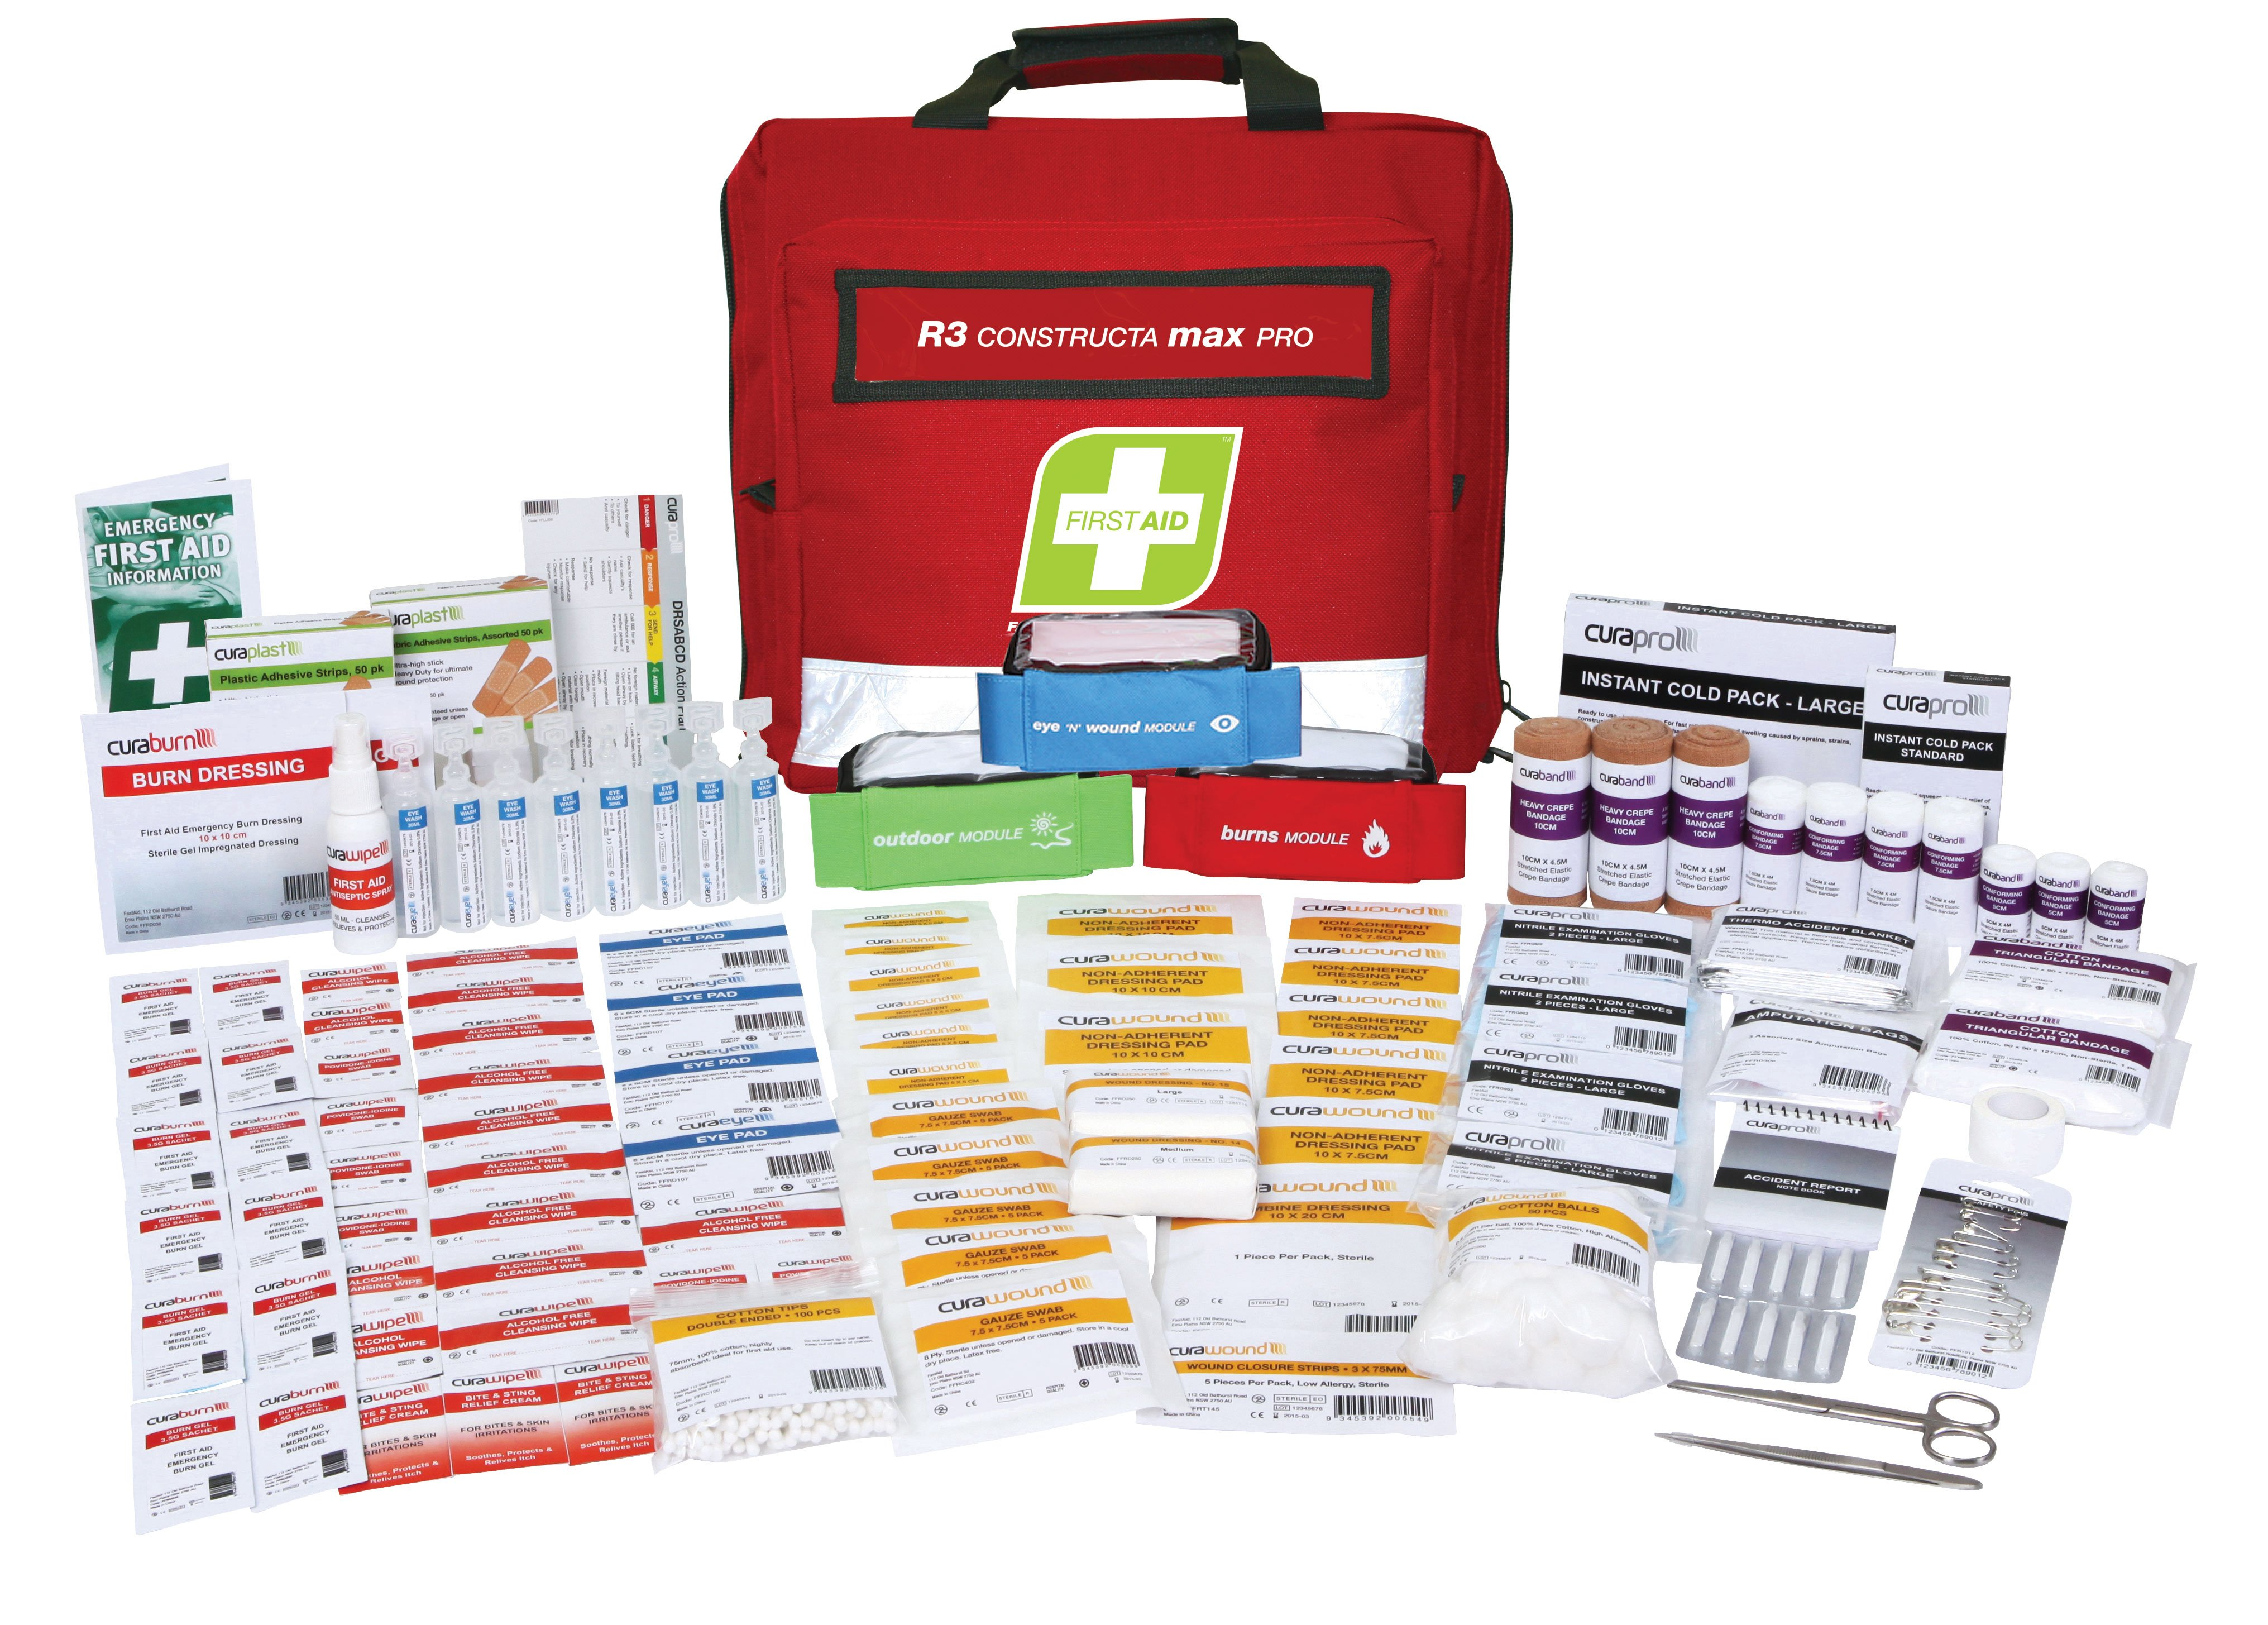 R3 Constructa Max Pro First Aid Kit, Soft Pack